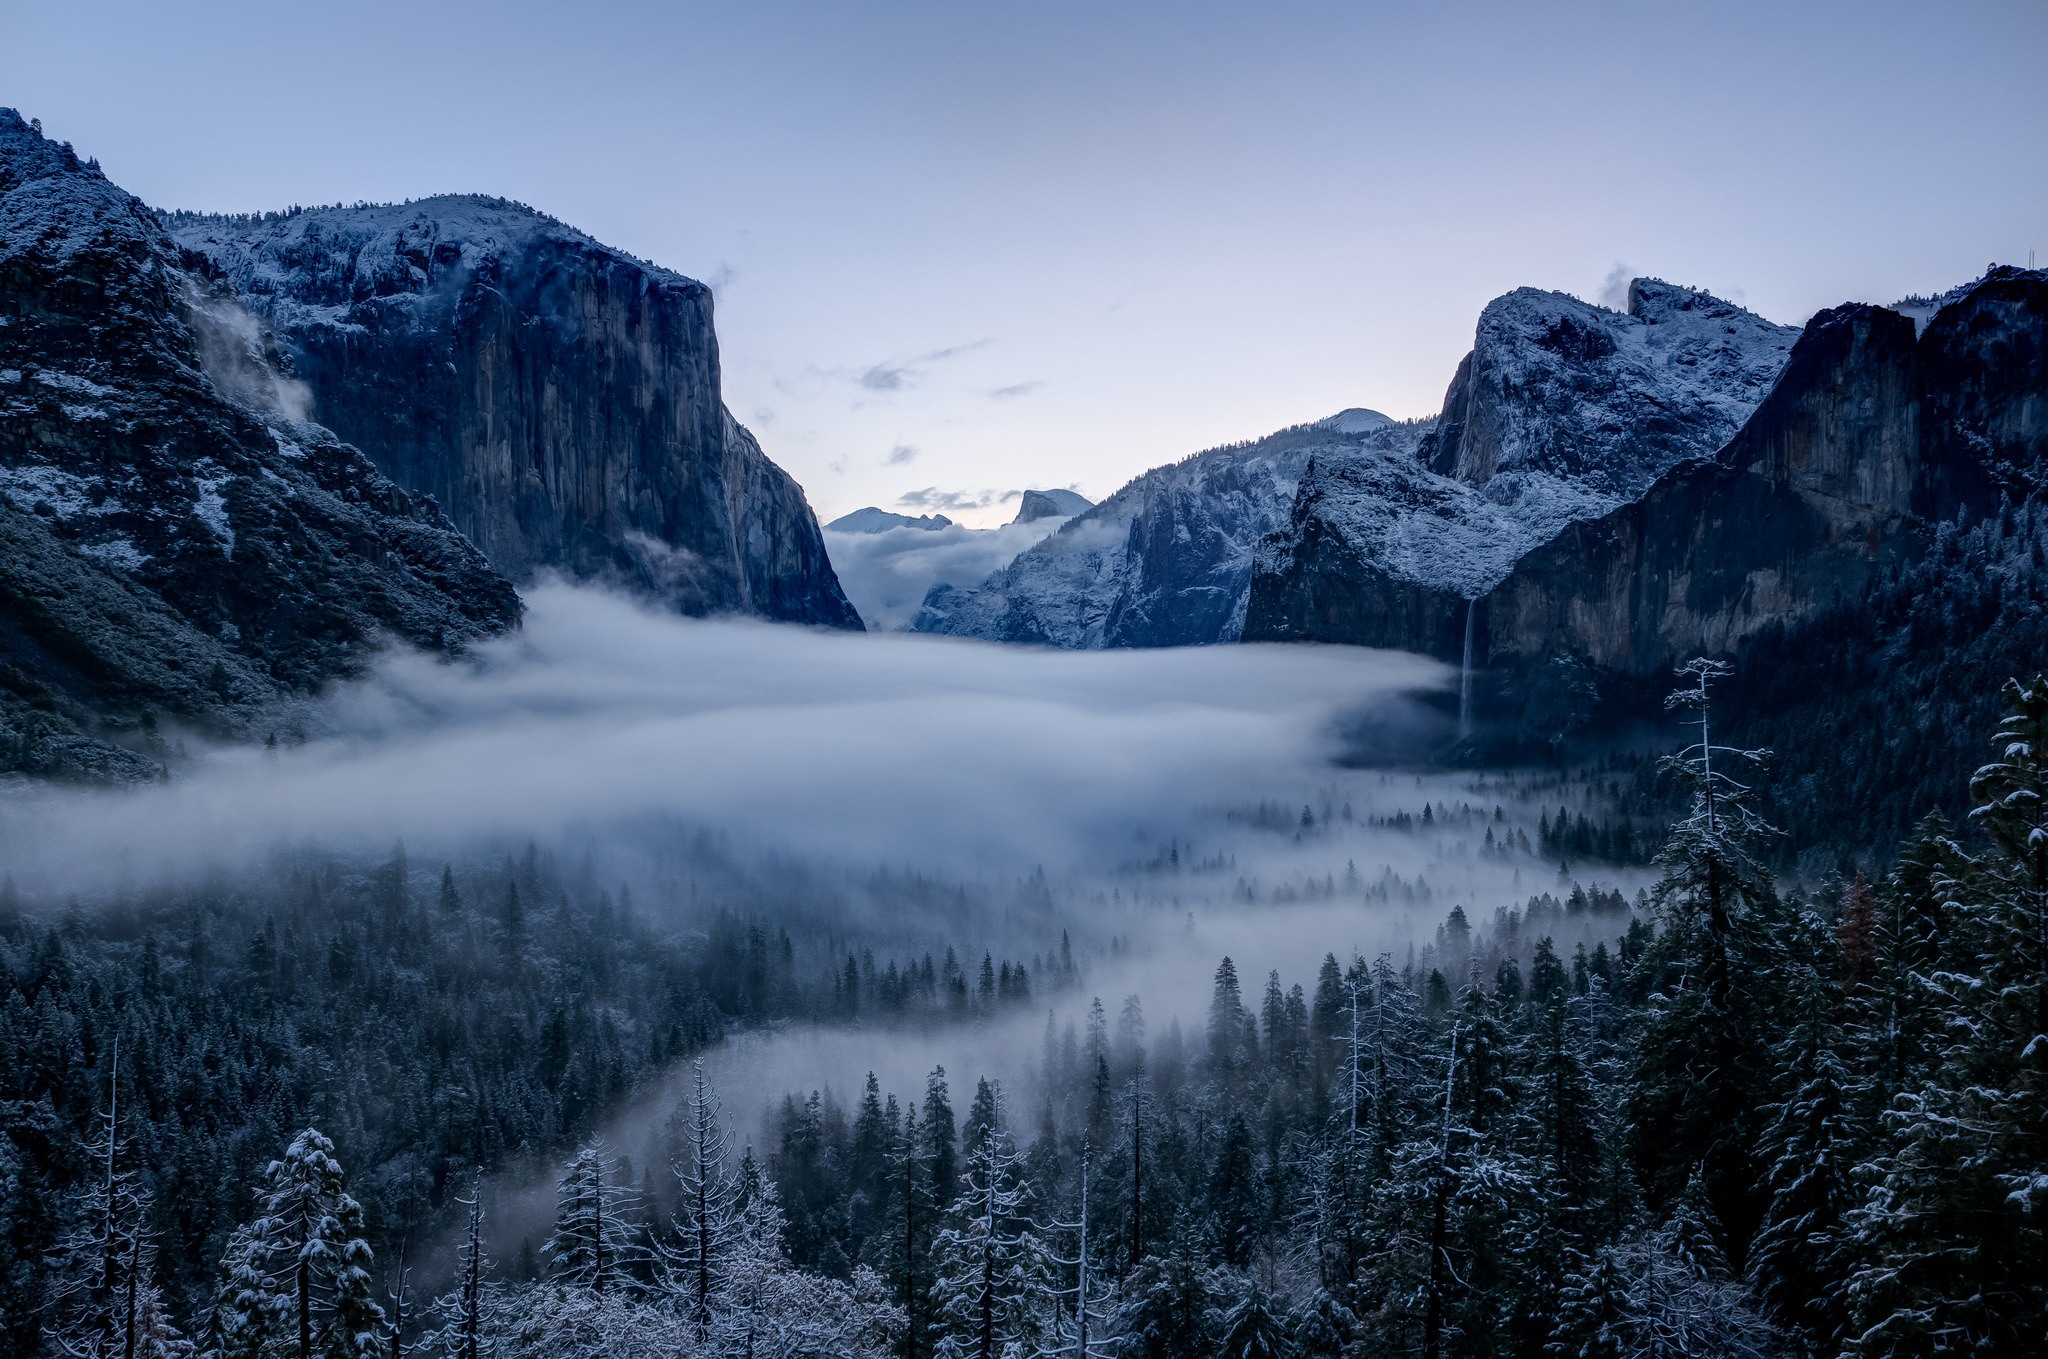 yosemite valley with snow in winter